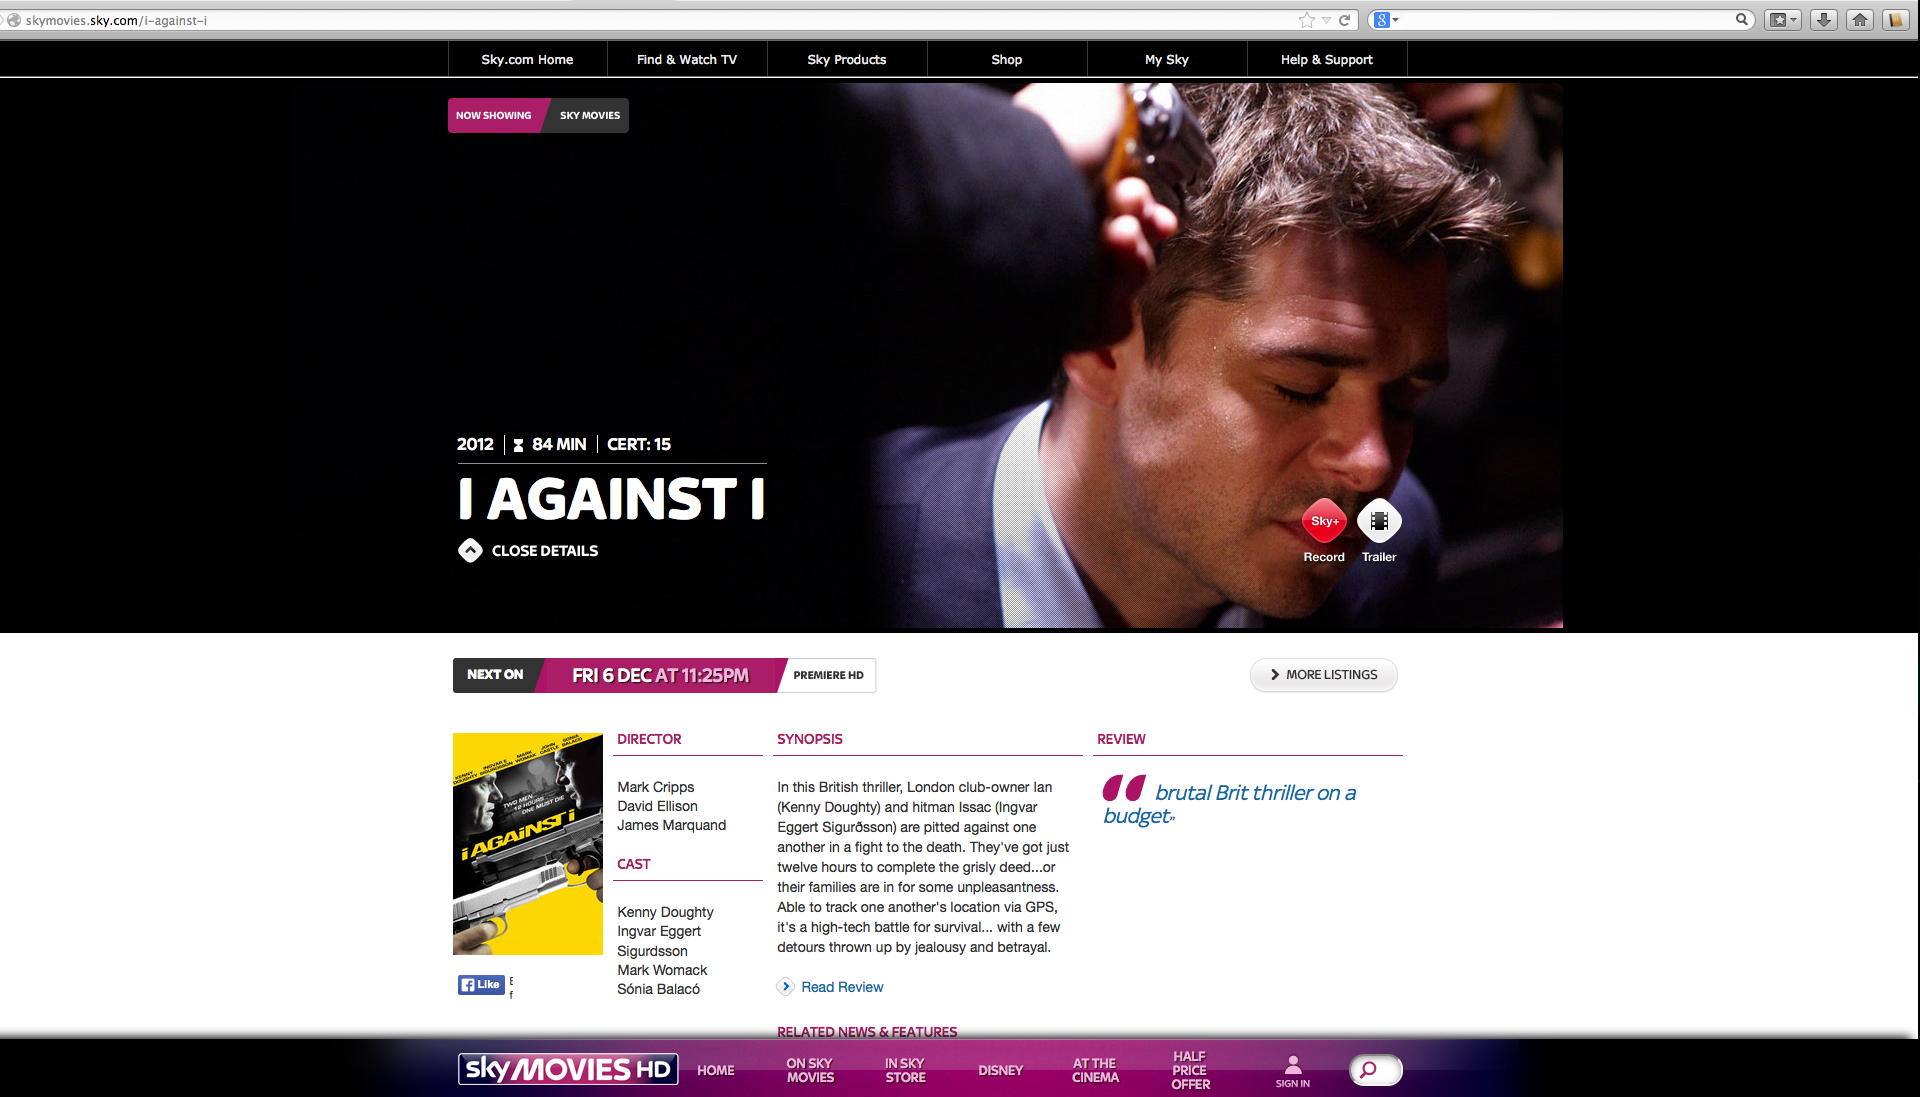 Sky Movies Screenshot of I-against-I VOD, feature film directed by filmmaker David Ellison.